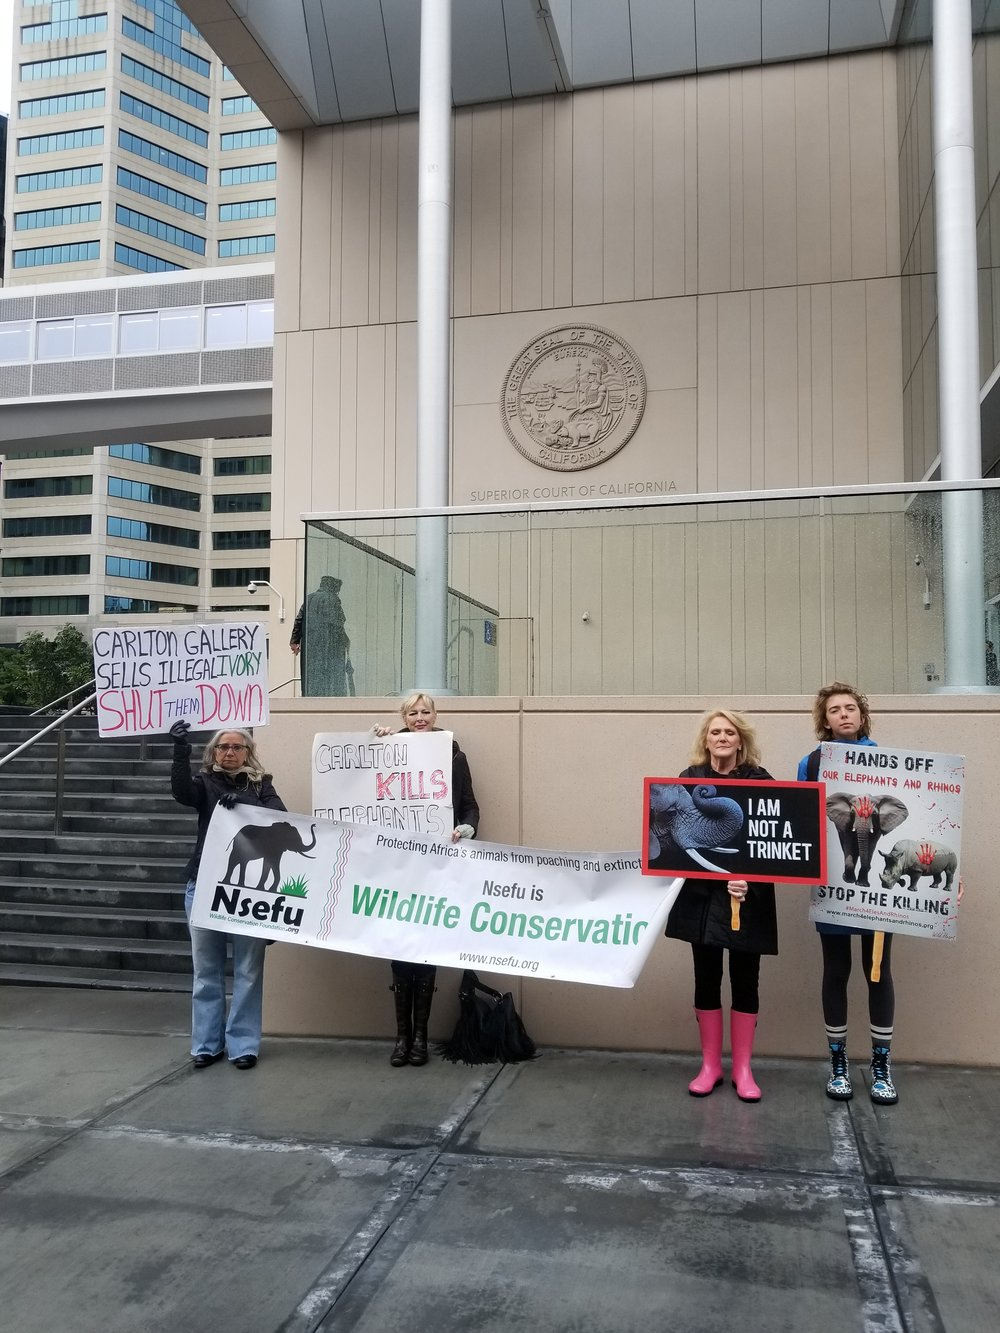 Protest at the courthouse!